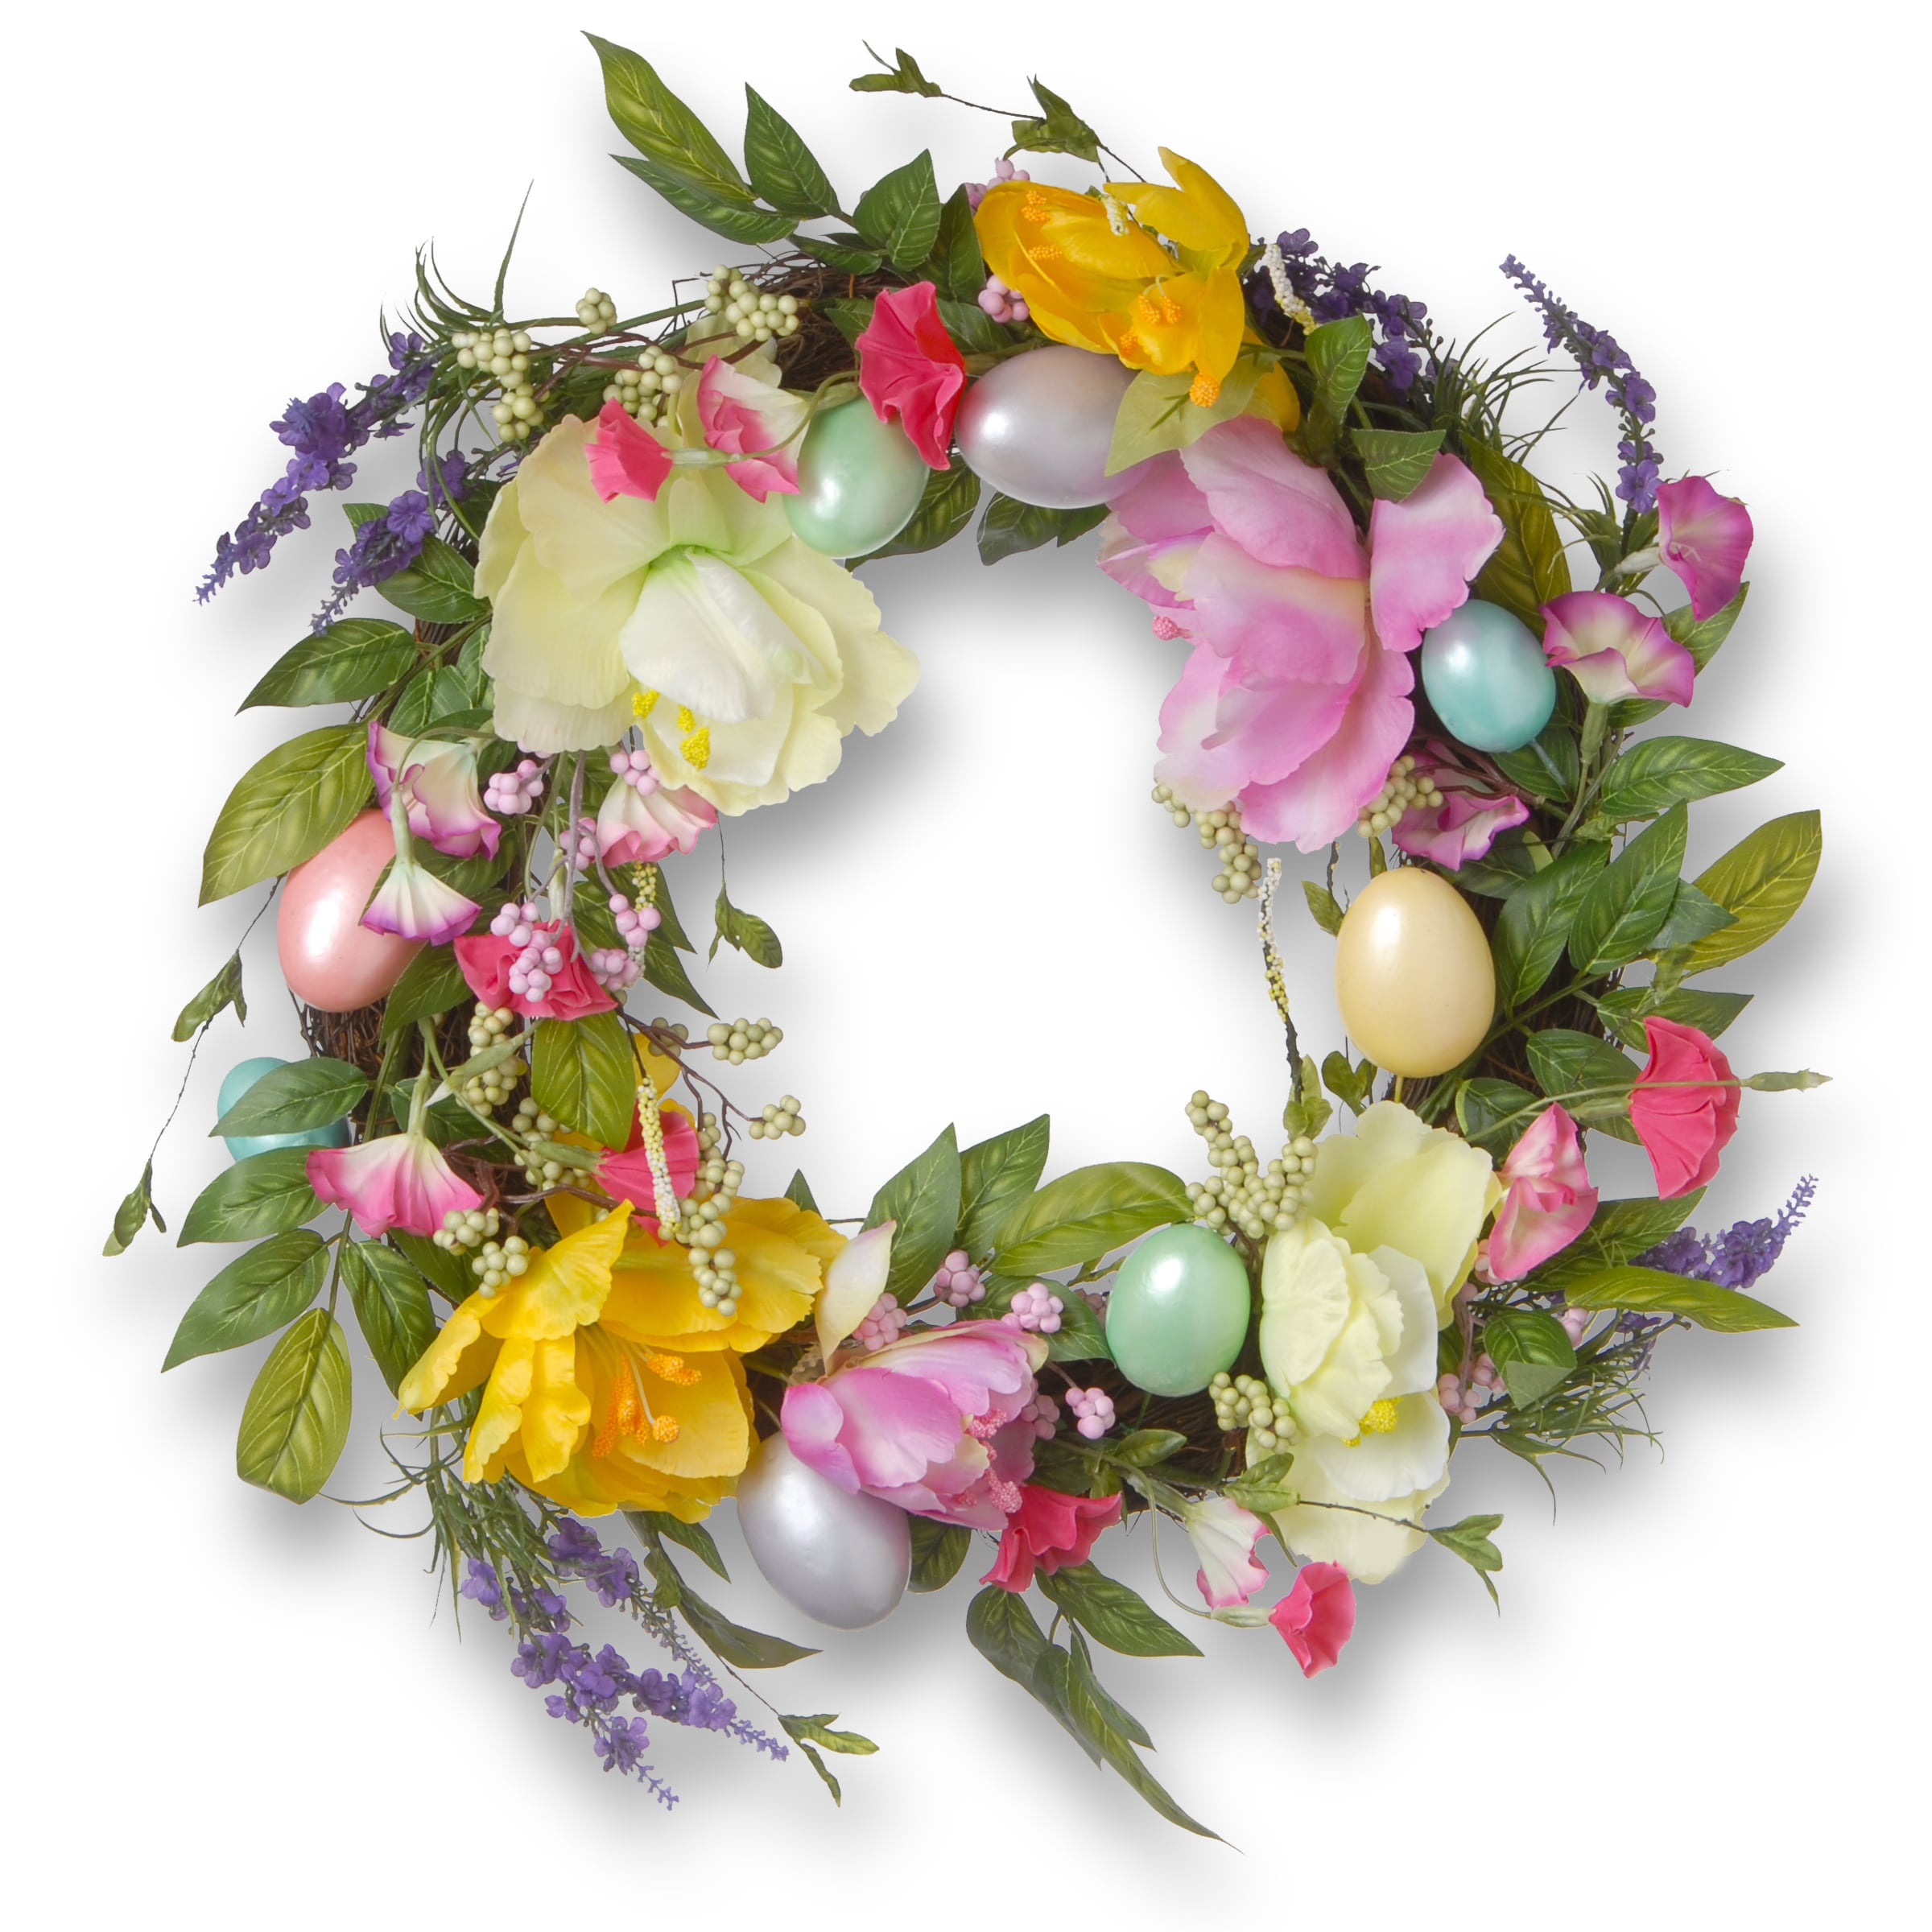 National Tree 20-inch Tulip and Easter Egg Wreath (Multi)...